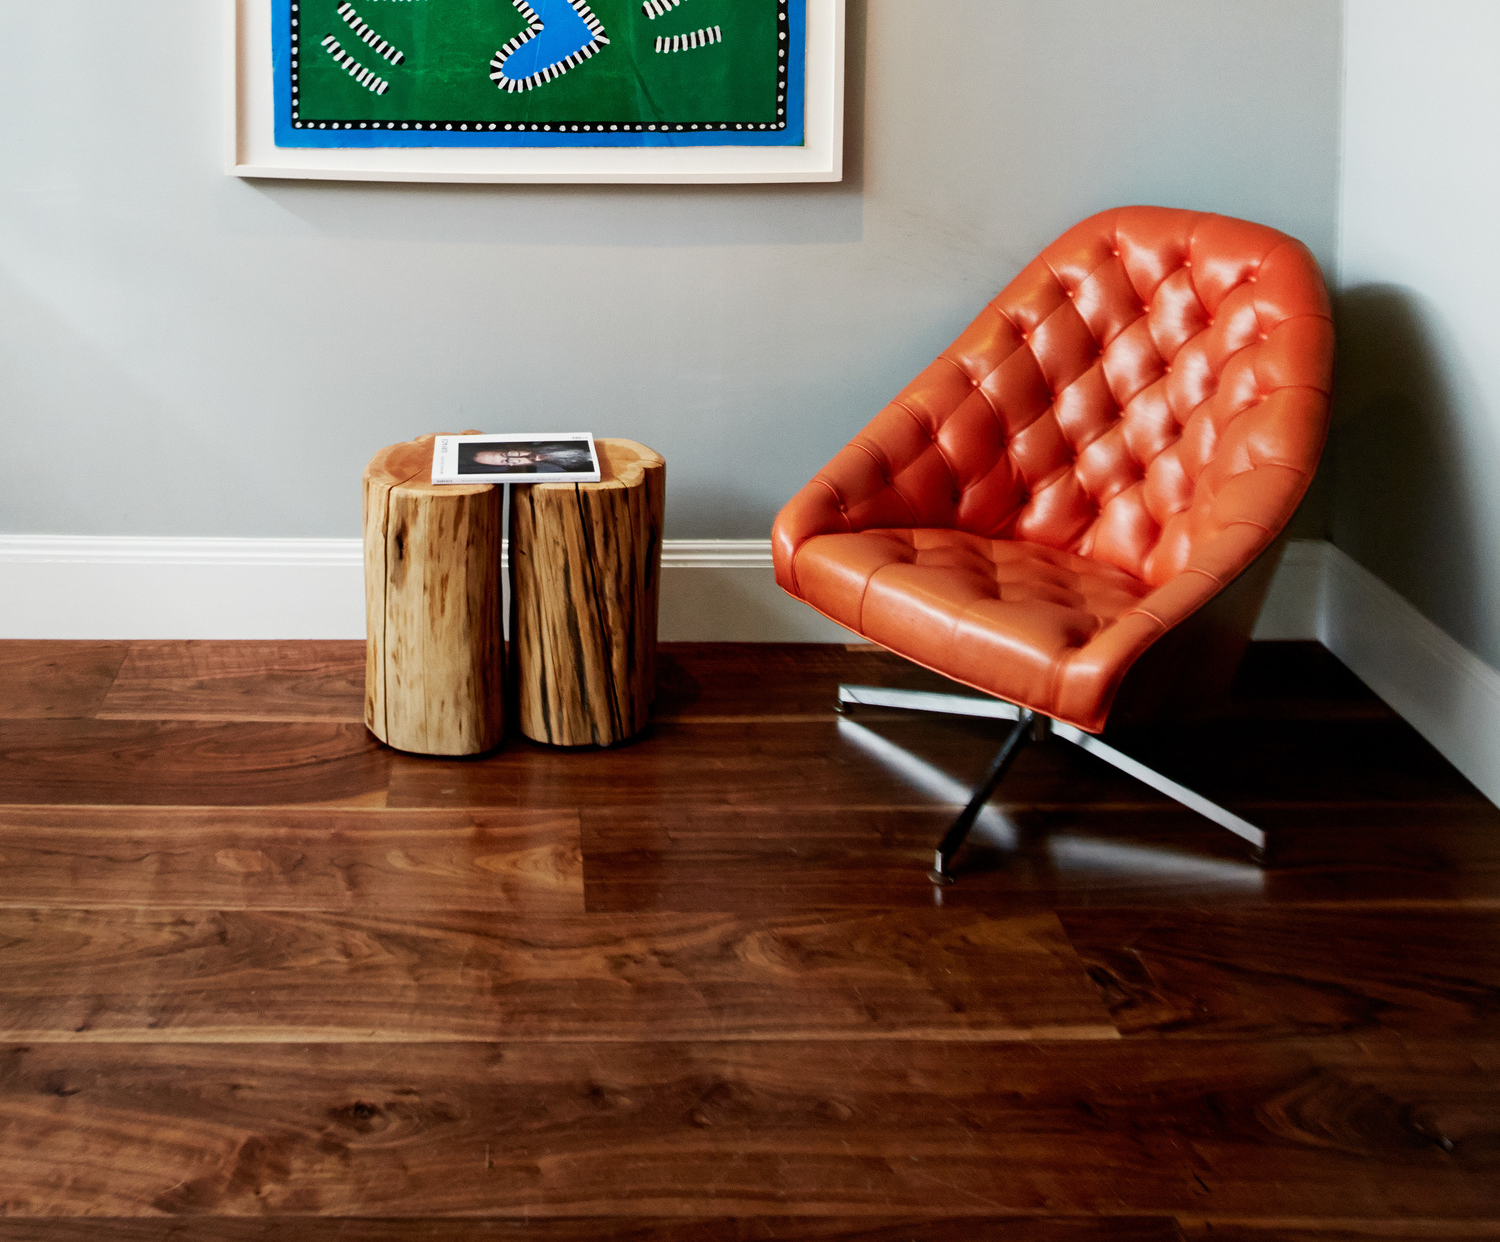 The Broome Street Hotel, New York., featuring The Hudson Company Select Harvest Walnut [Clear Finish] floors.